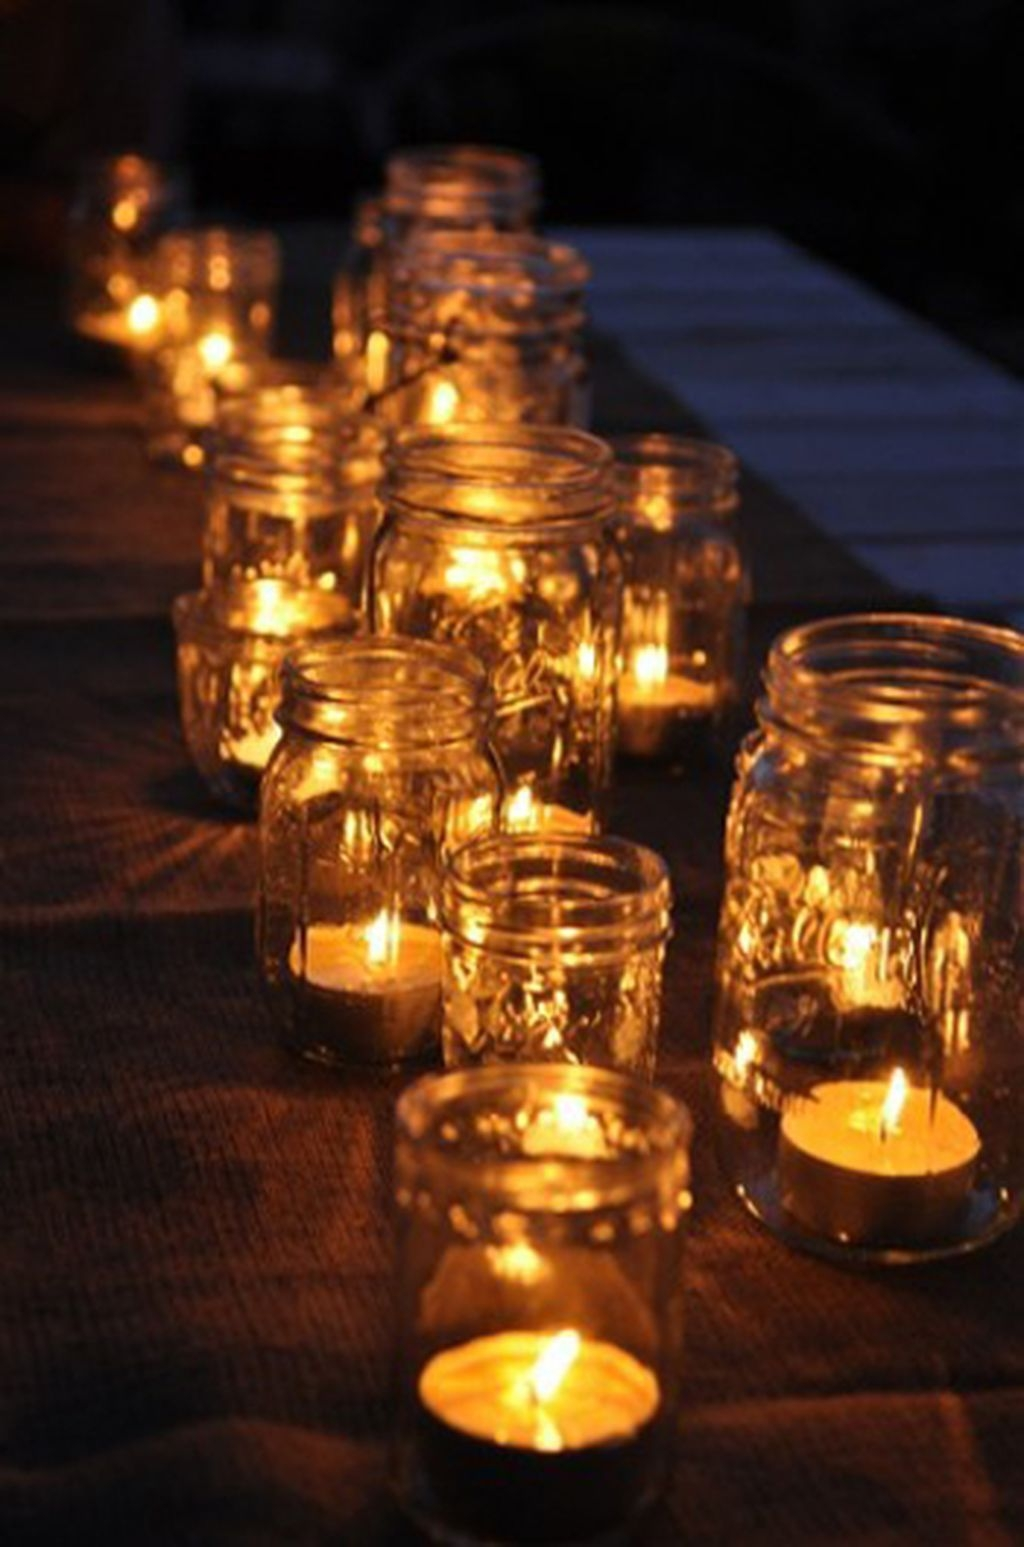 Romantic Christmas Centerpieces Ideas With Candles 44